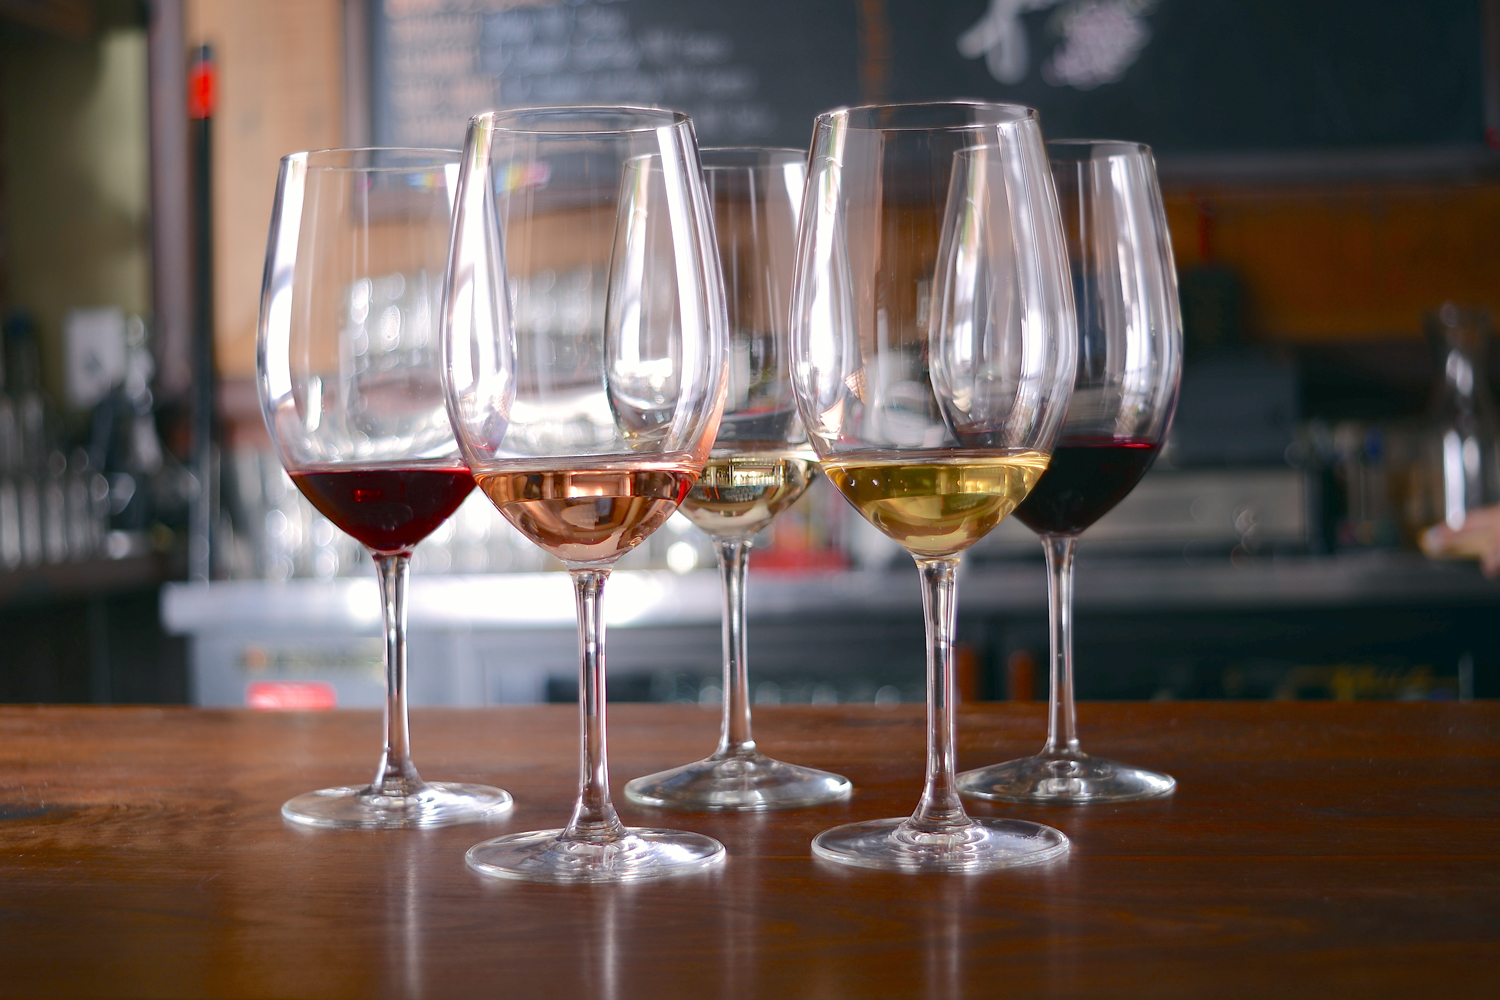 join our wine club. - Explore our 4 Clubs. One will be perfect for you.